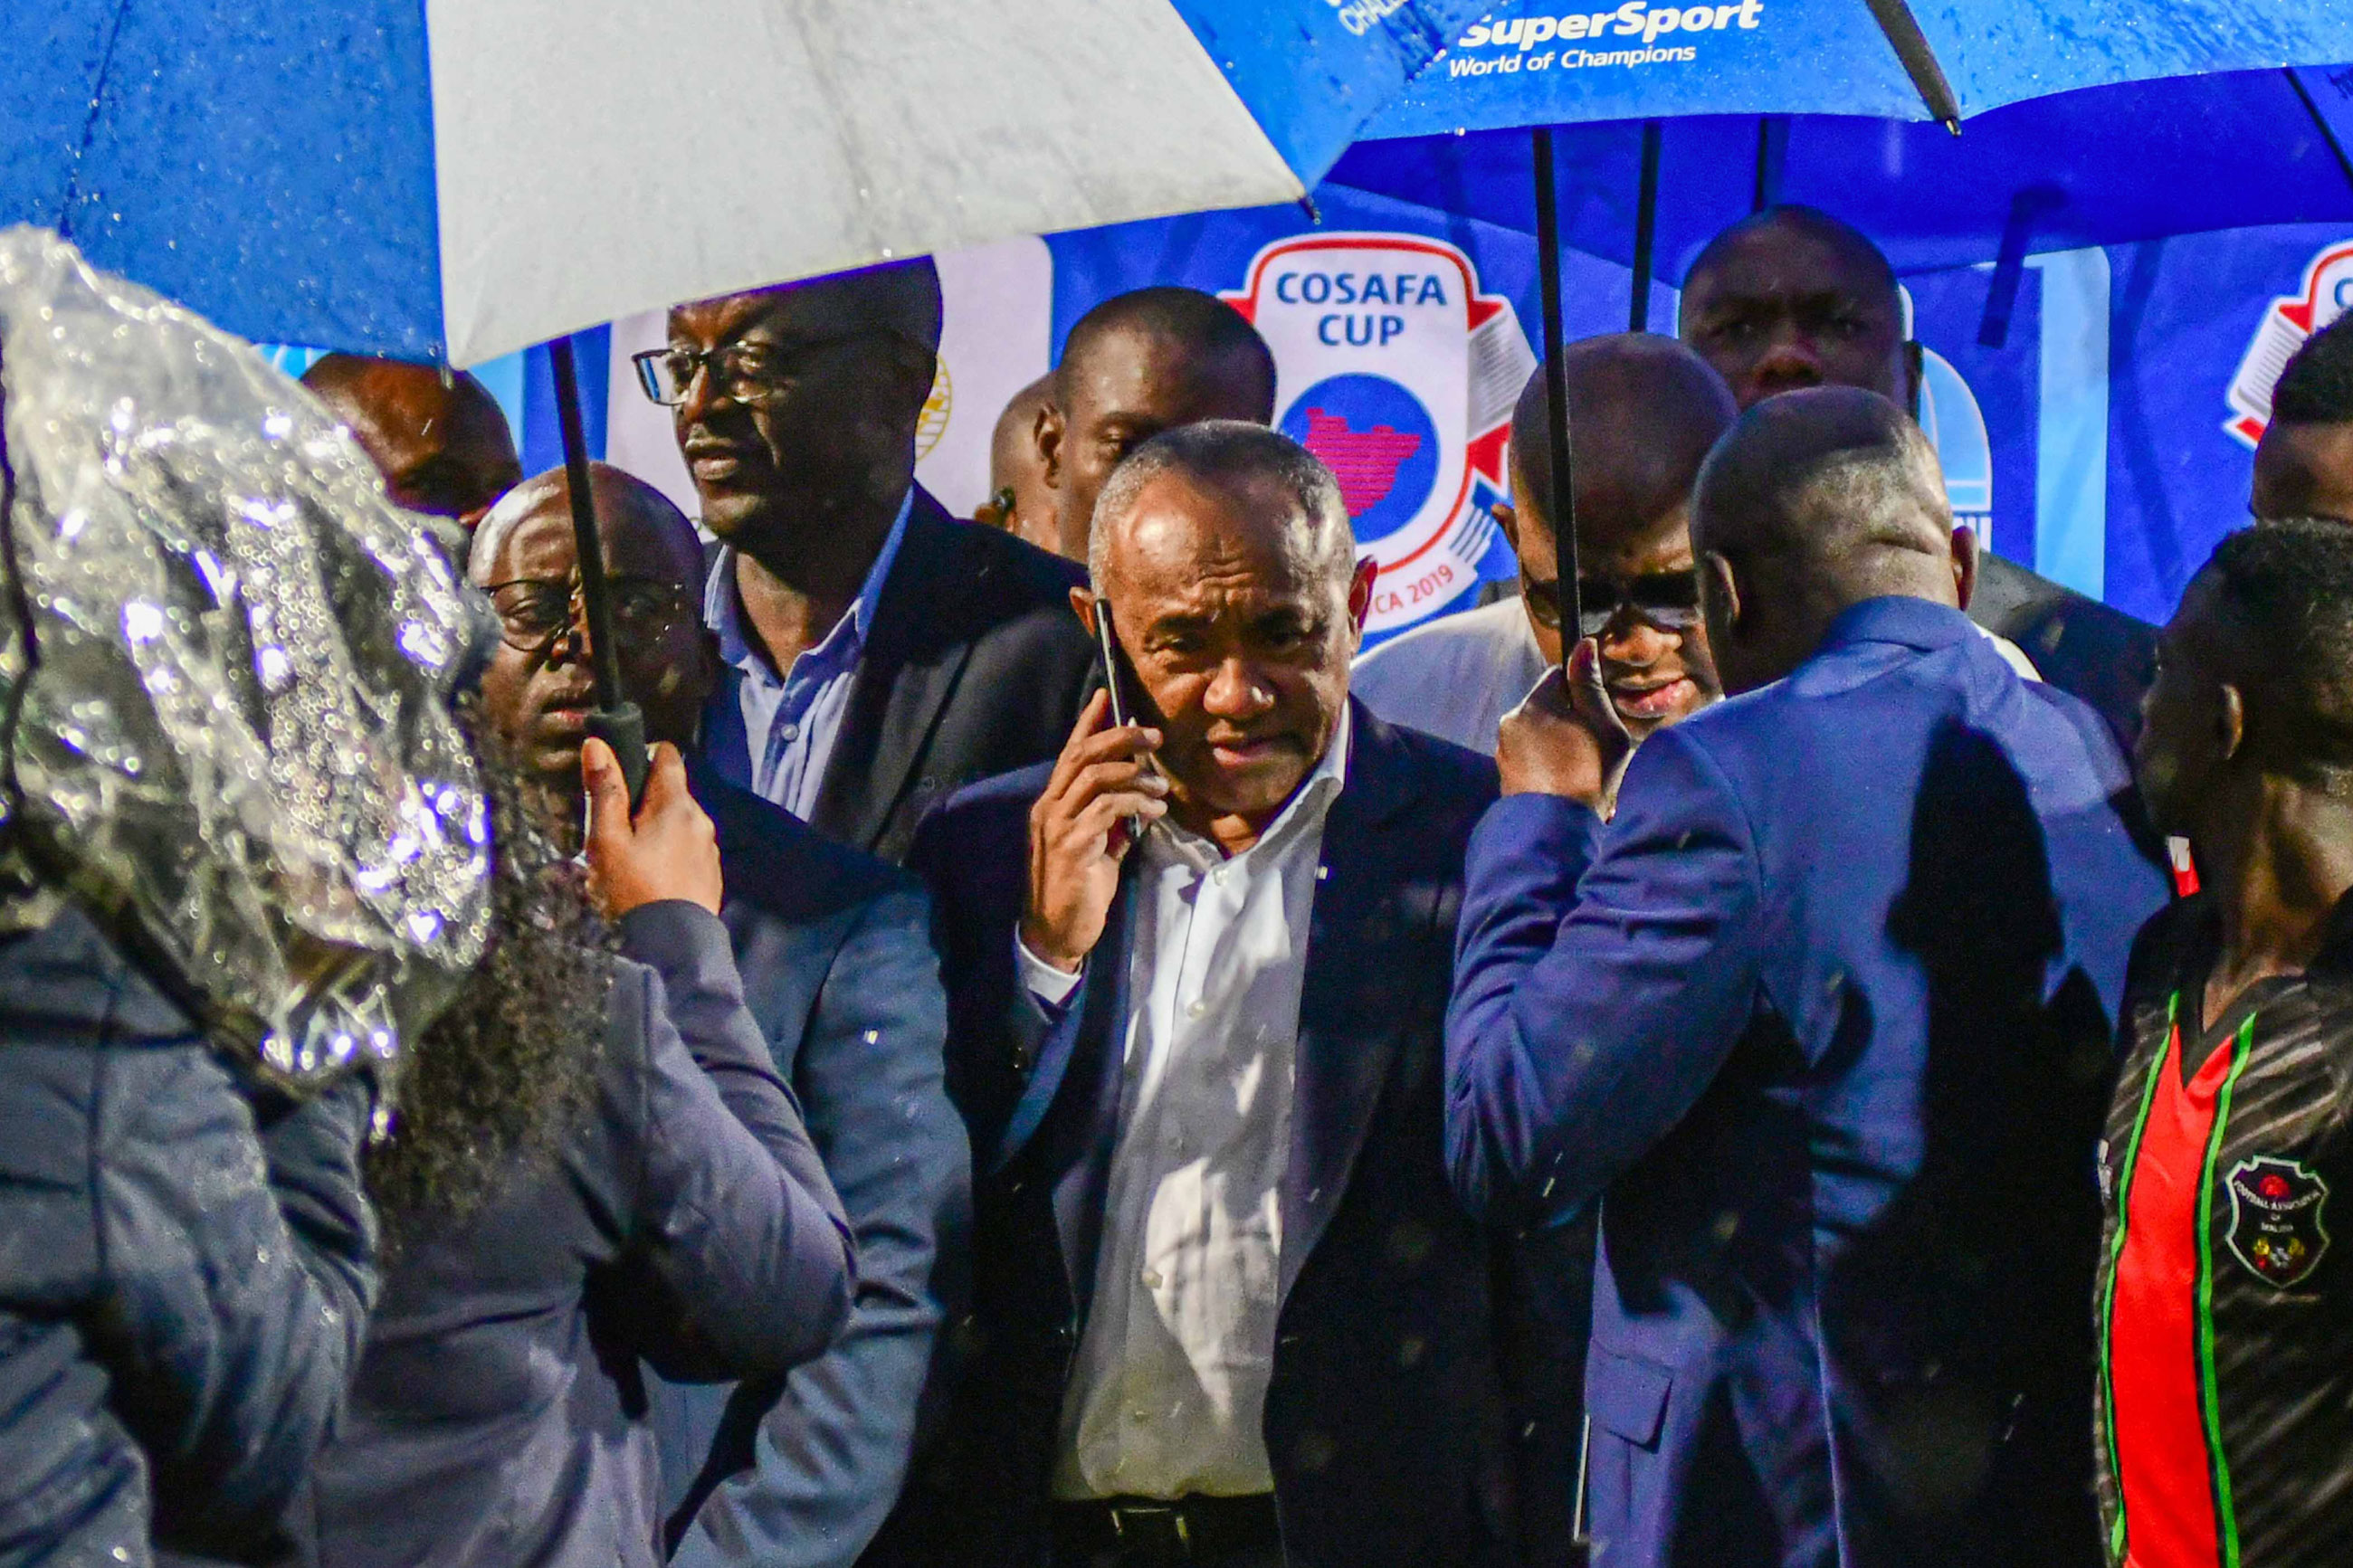 28 May 2019: Confederation of African Football president Ahmad Ahmad (centre) at the Cosafa Cup match between Namibia and Malawi at King Zwelithini Stadium in Durban. (Photograph by Darren Stewart/Gallo Images)